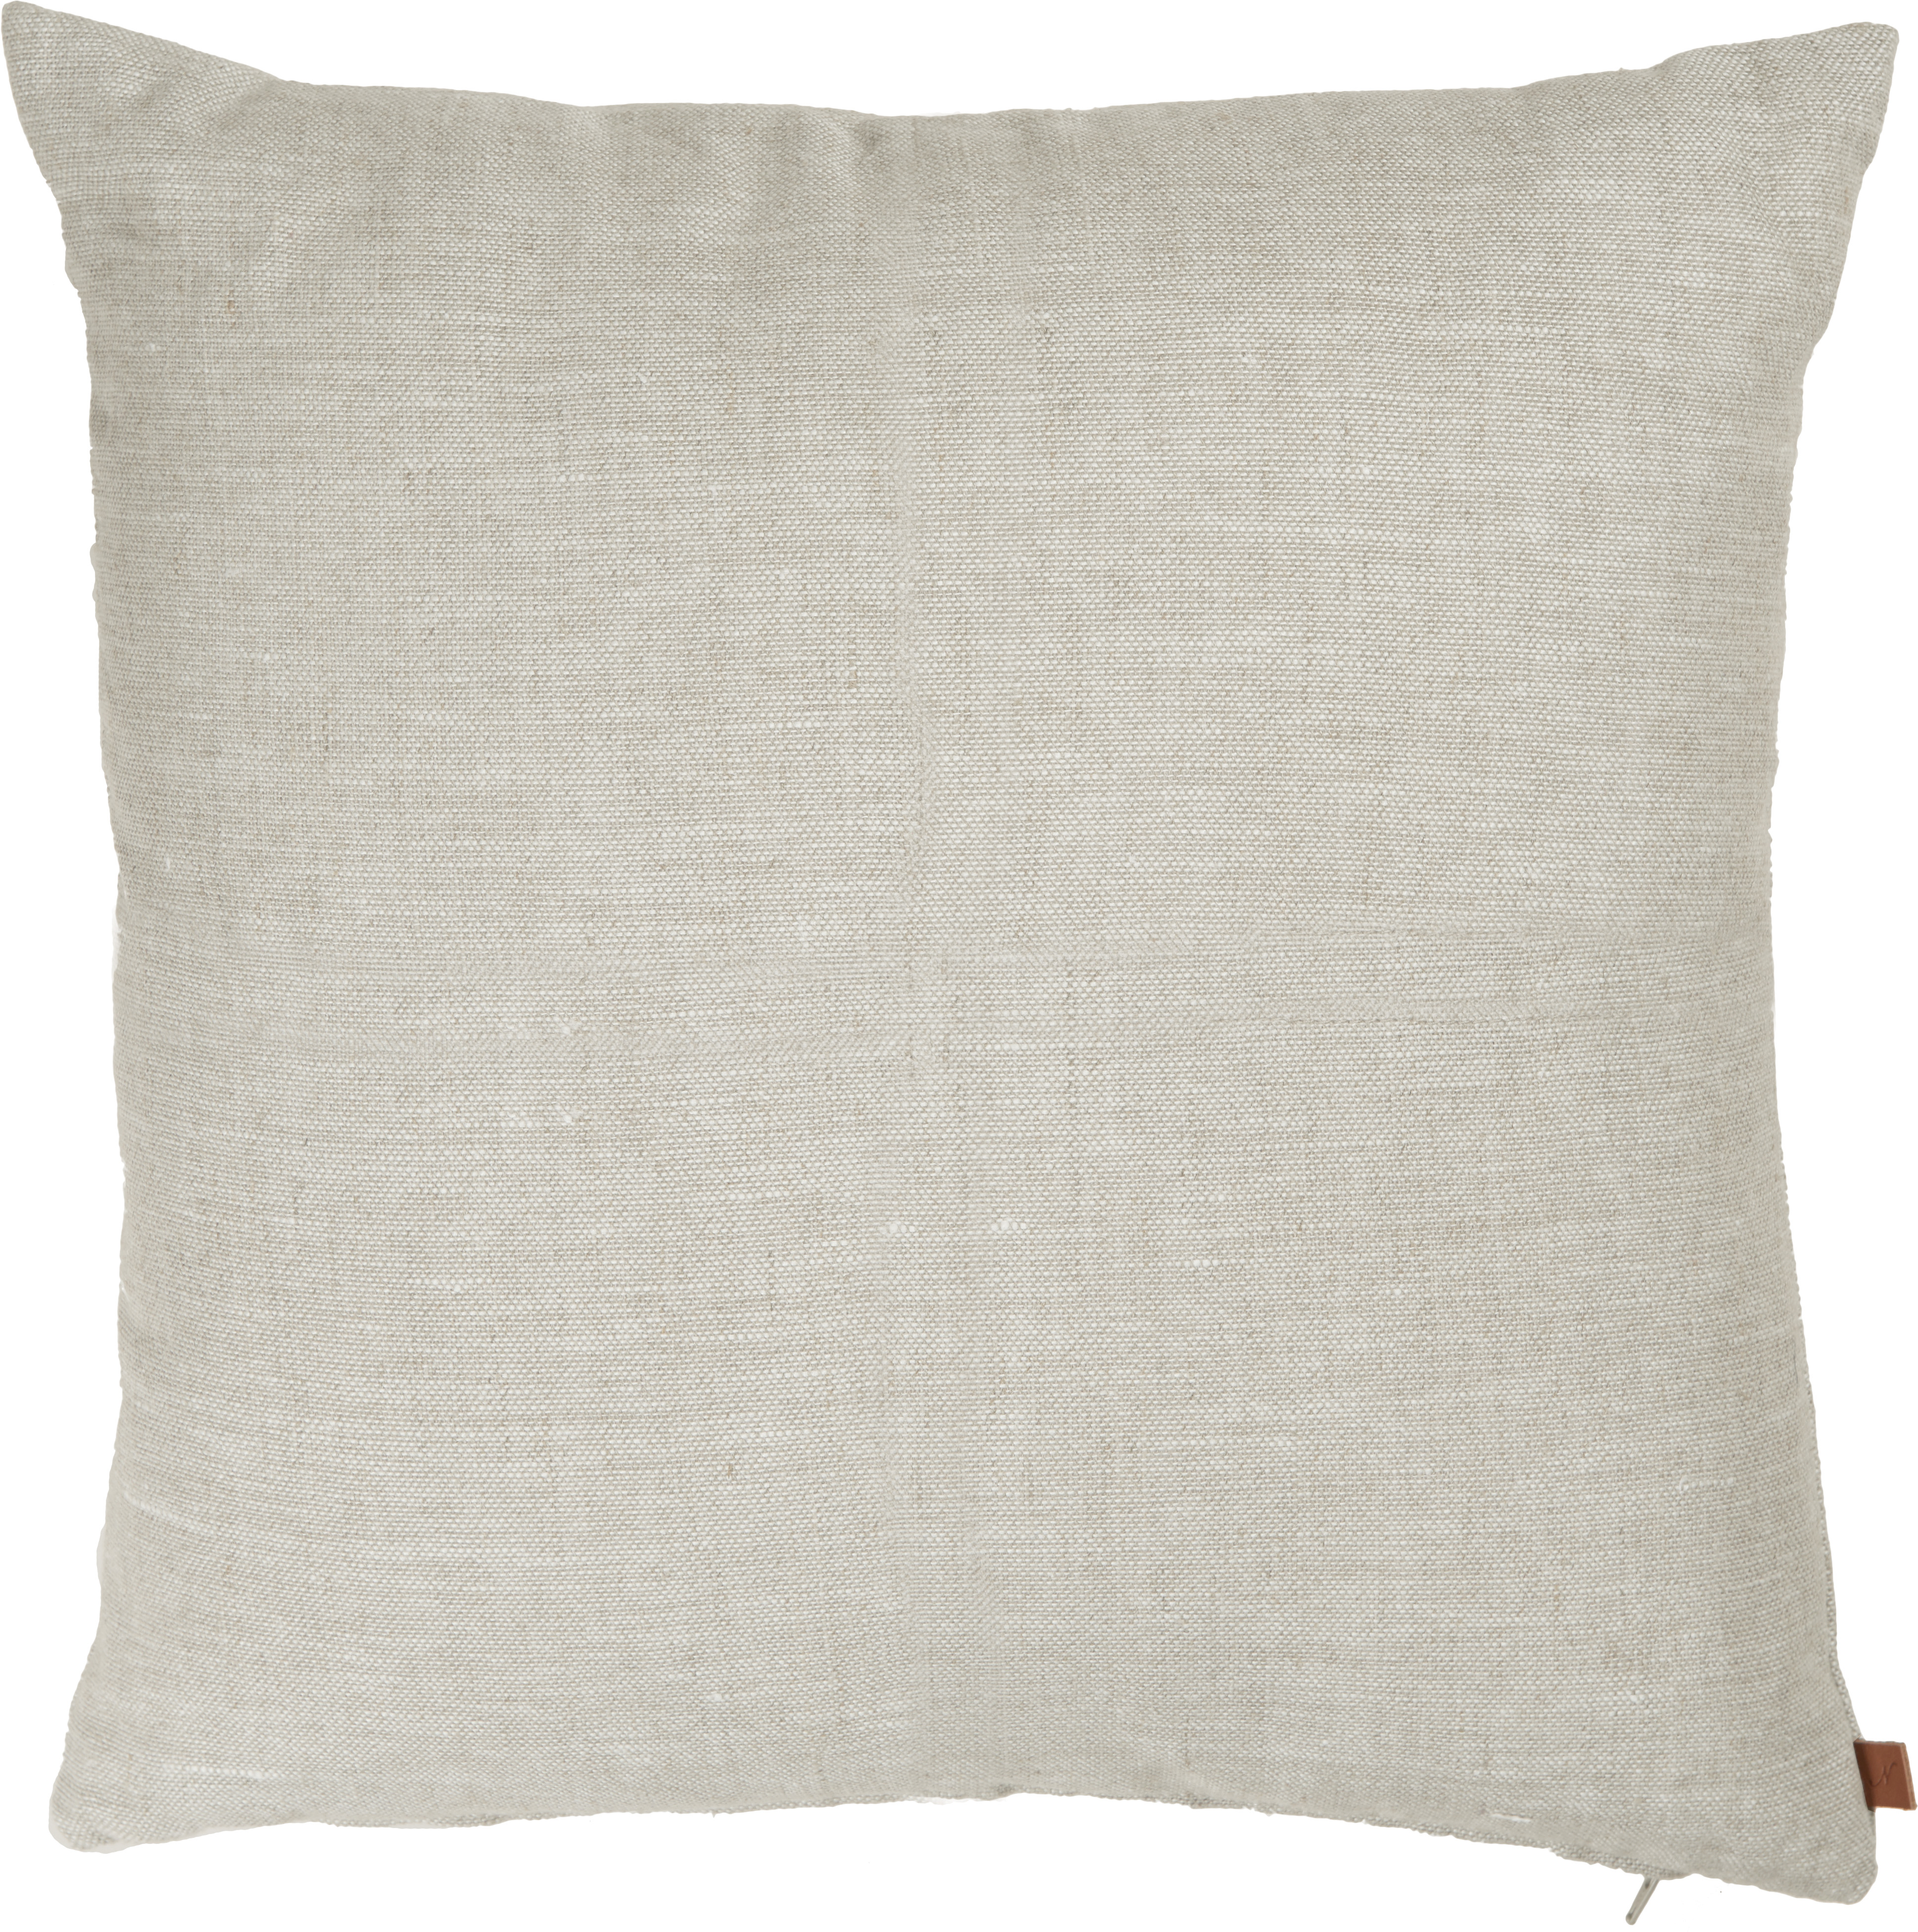 Florence Cushion 57x57cm, Clara Warm White